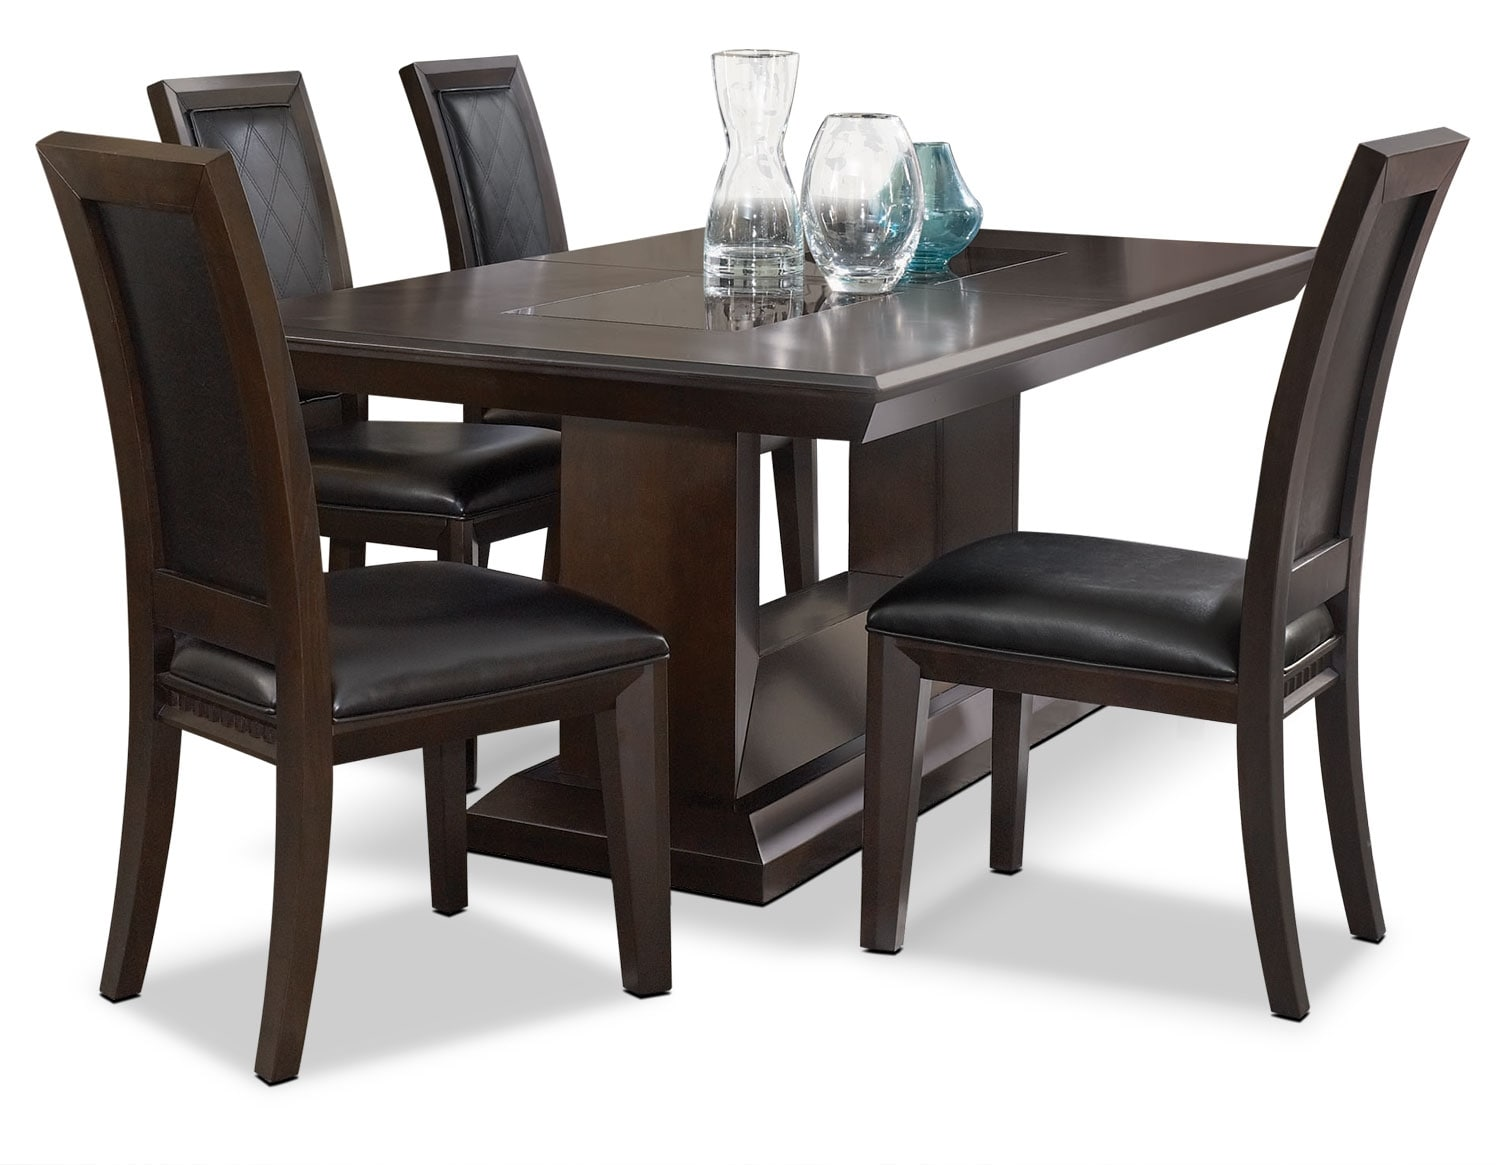 Dining Room Furniture - Brentwood 5 Piece Dining Package